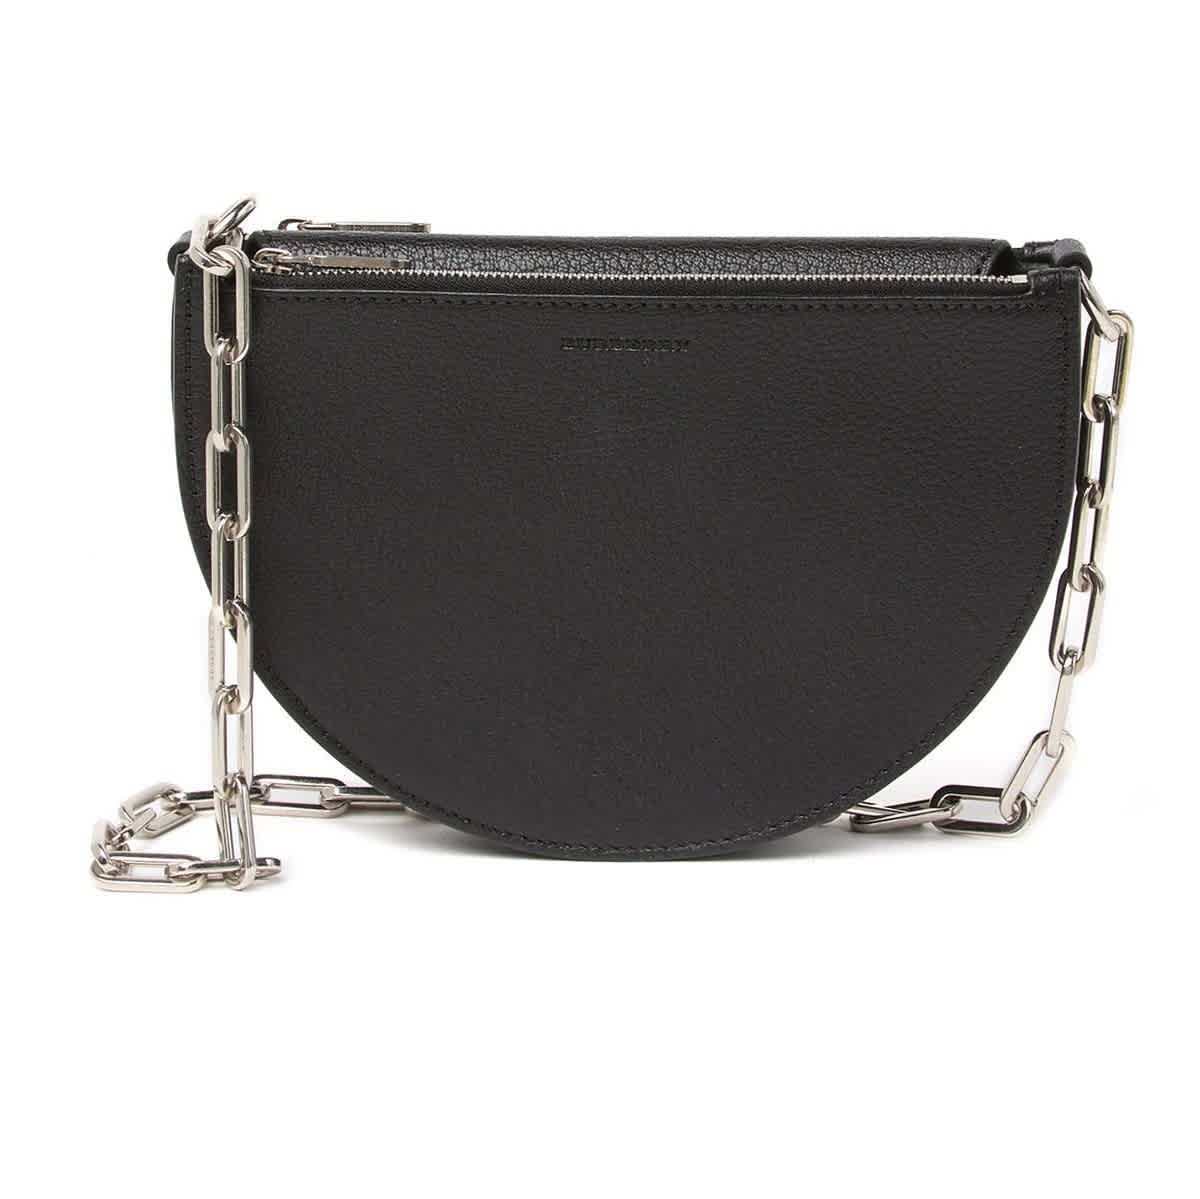 Burberry Pecan Chain Strap Leather Shoulder Bag In Black